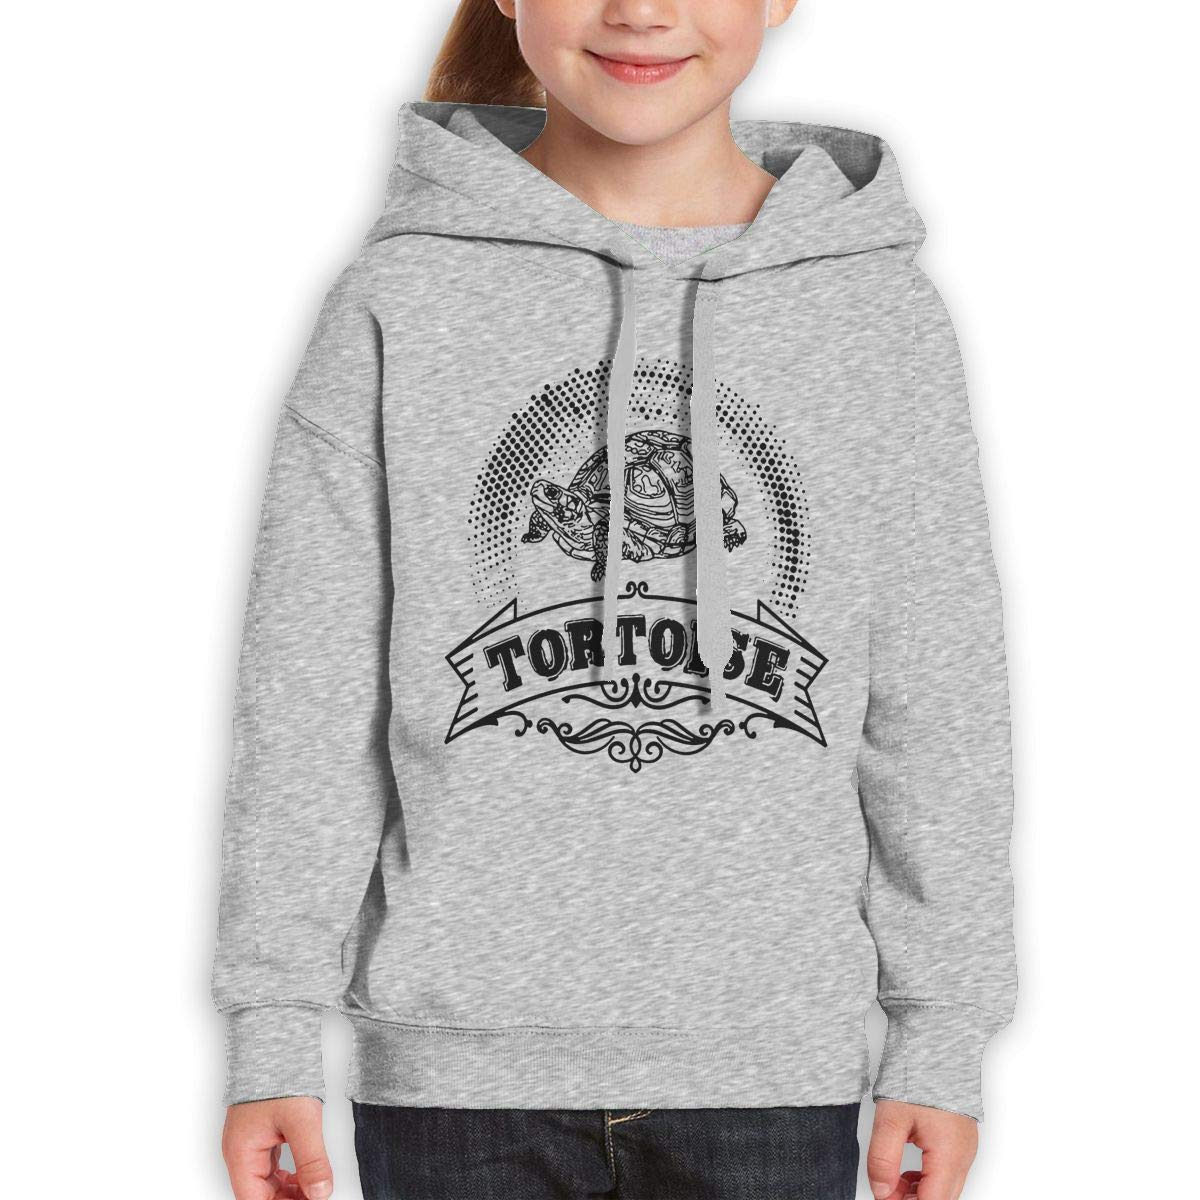 Boys Girls Vintage Style Tortoise Teen Youth Sweater Gray S